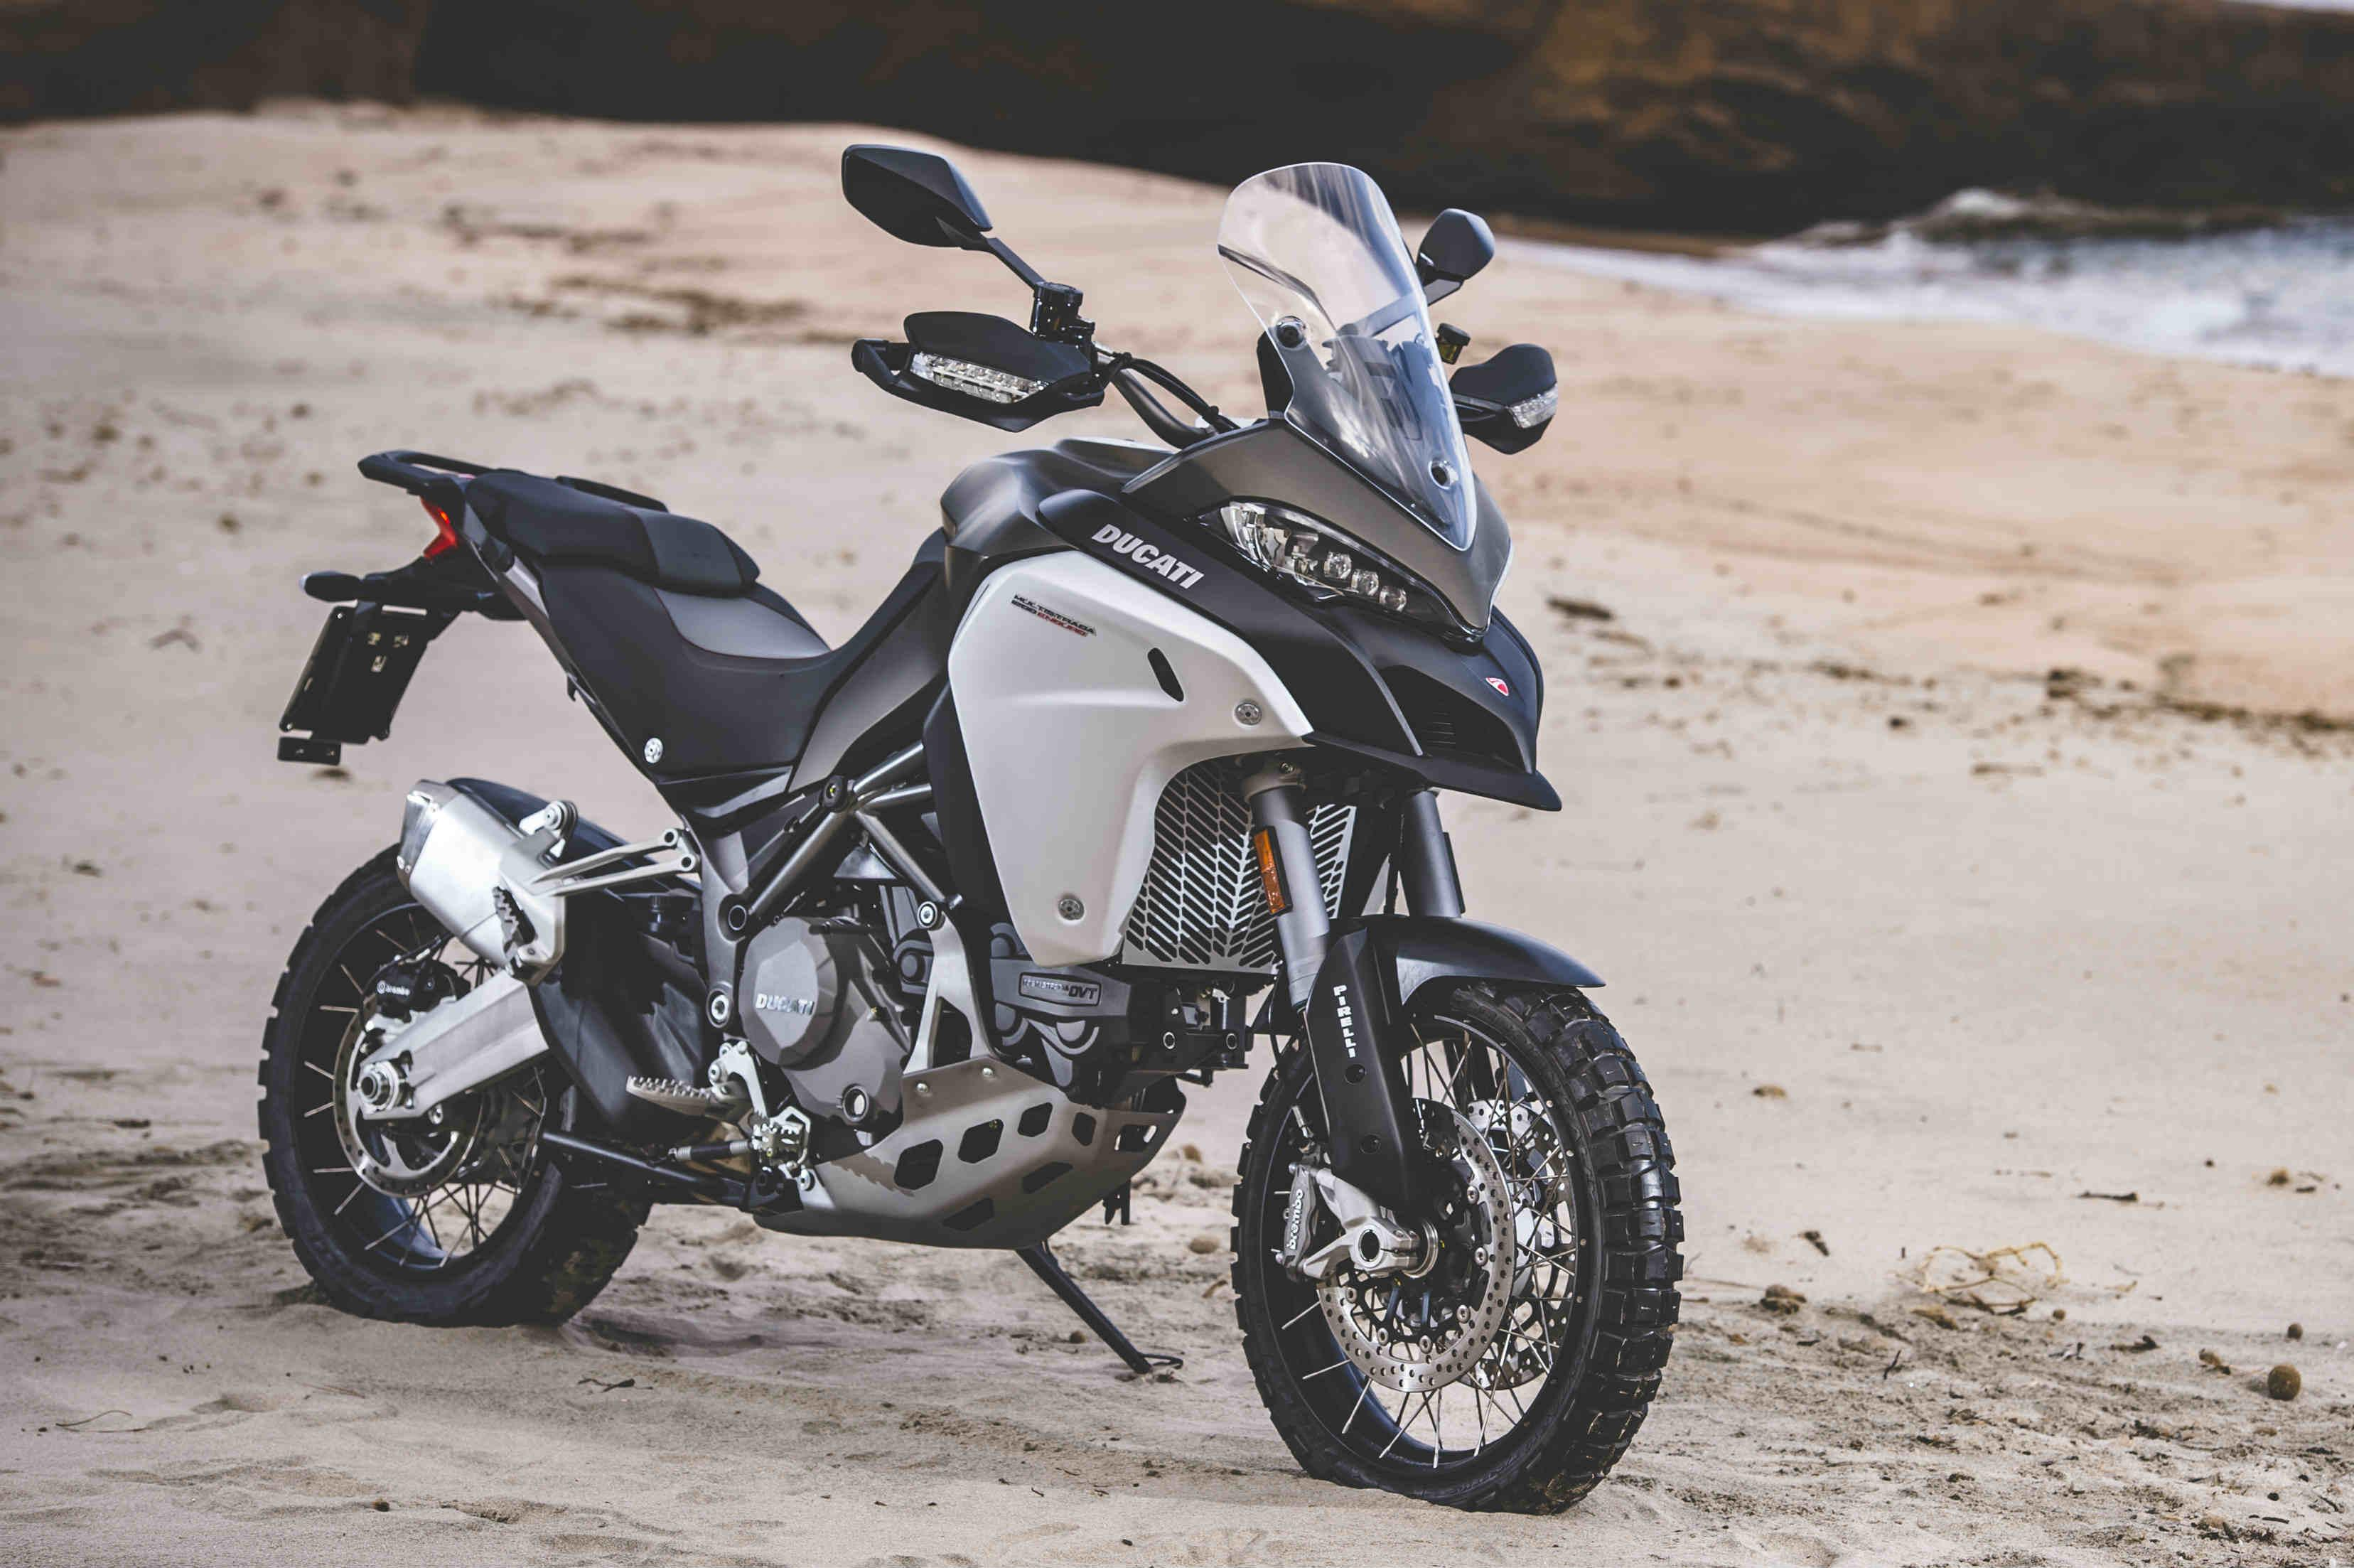 Ducati Multistrada 1200 Enduro launched at Rs 17.44 lakh